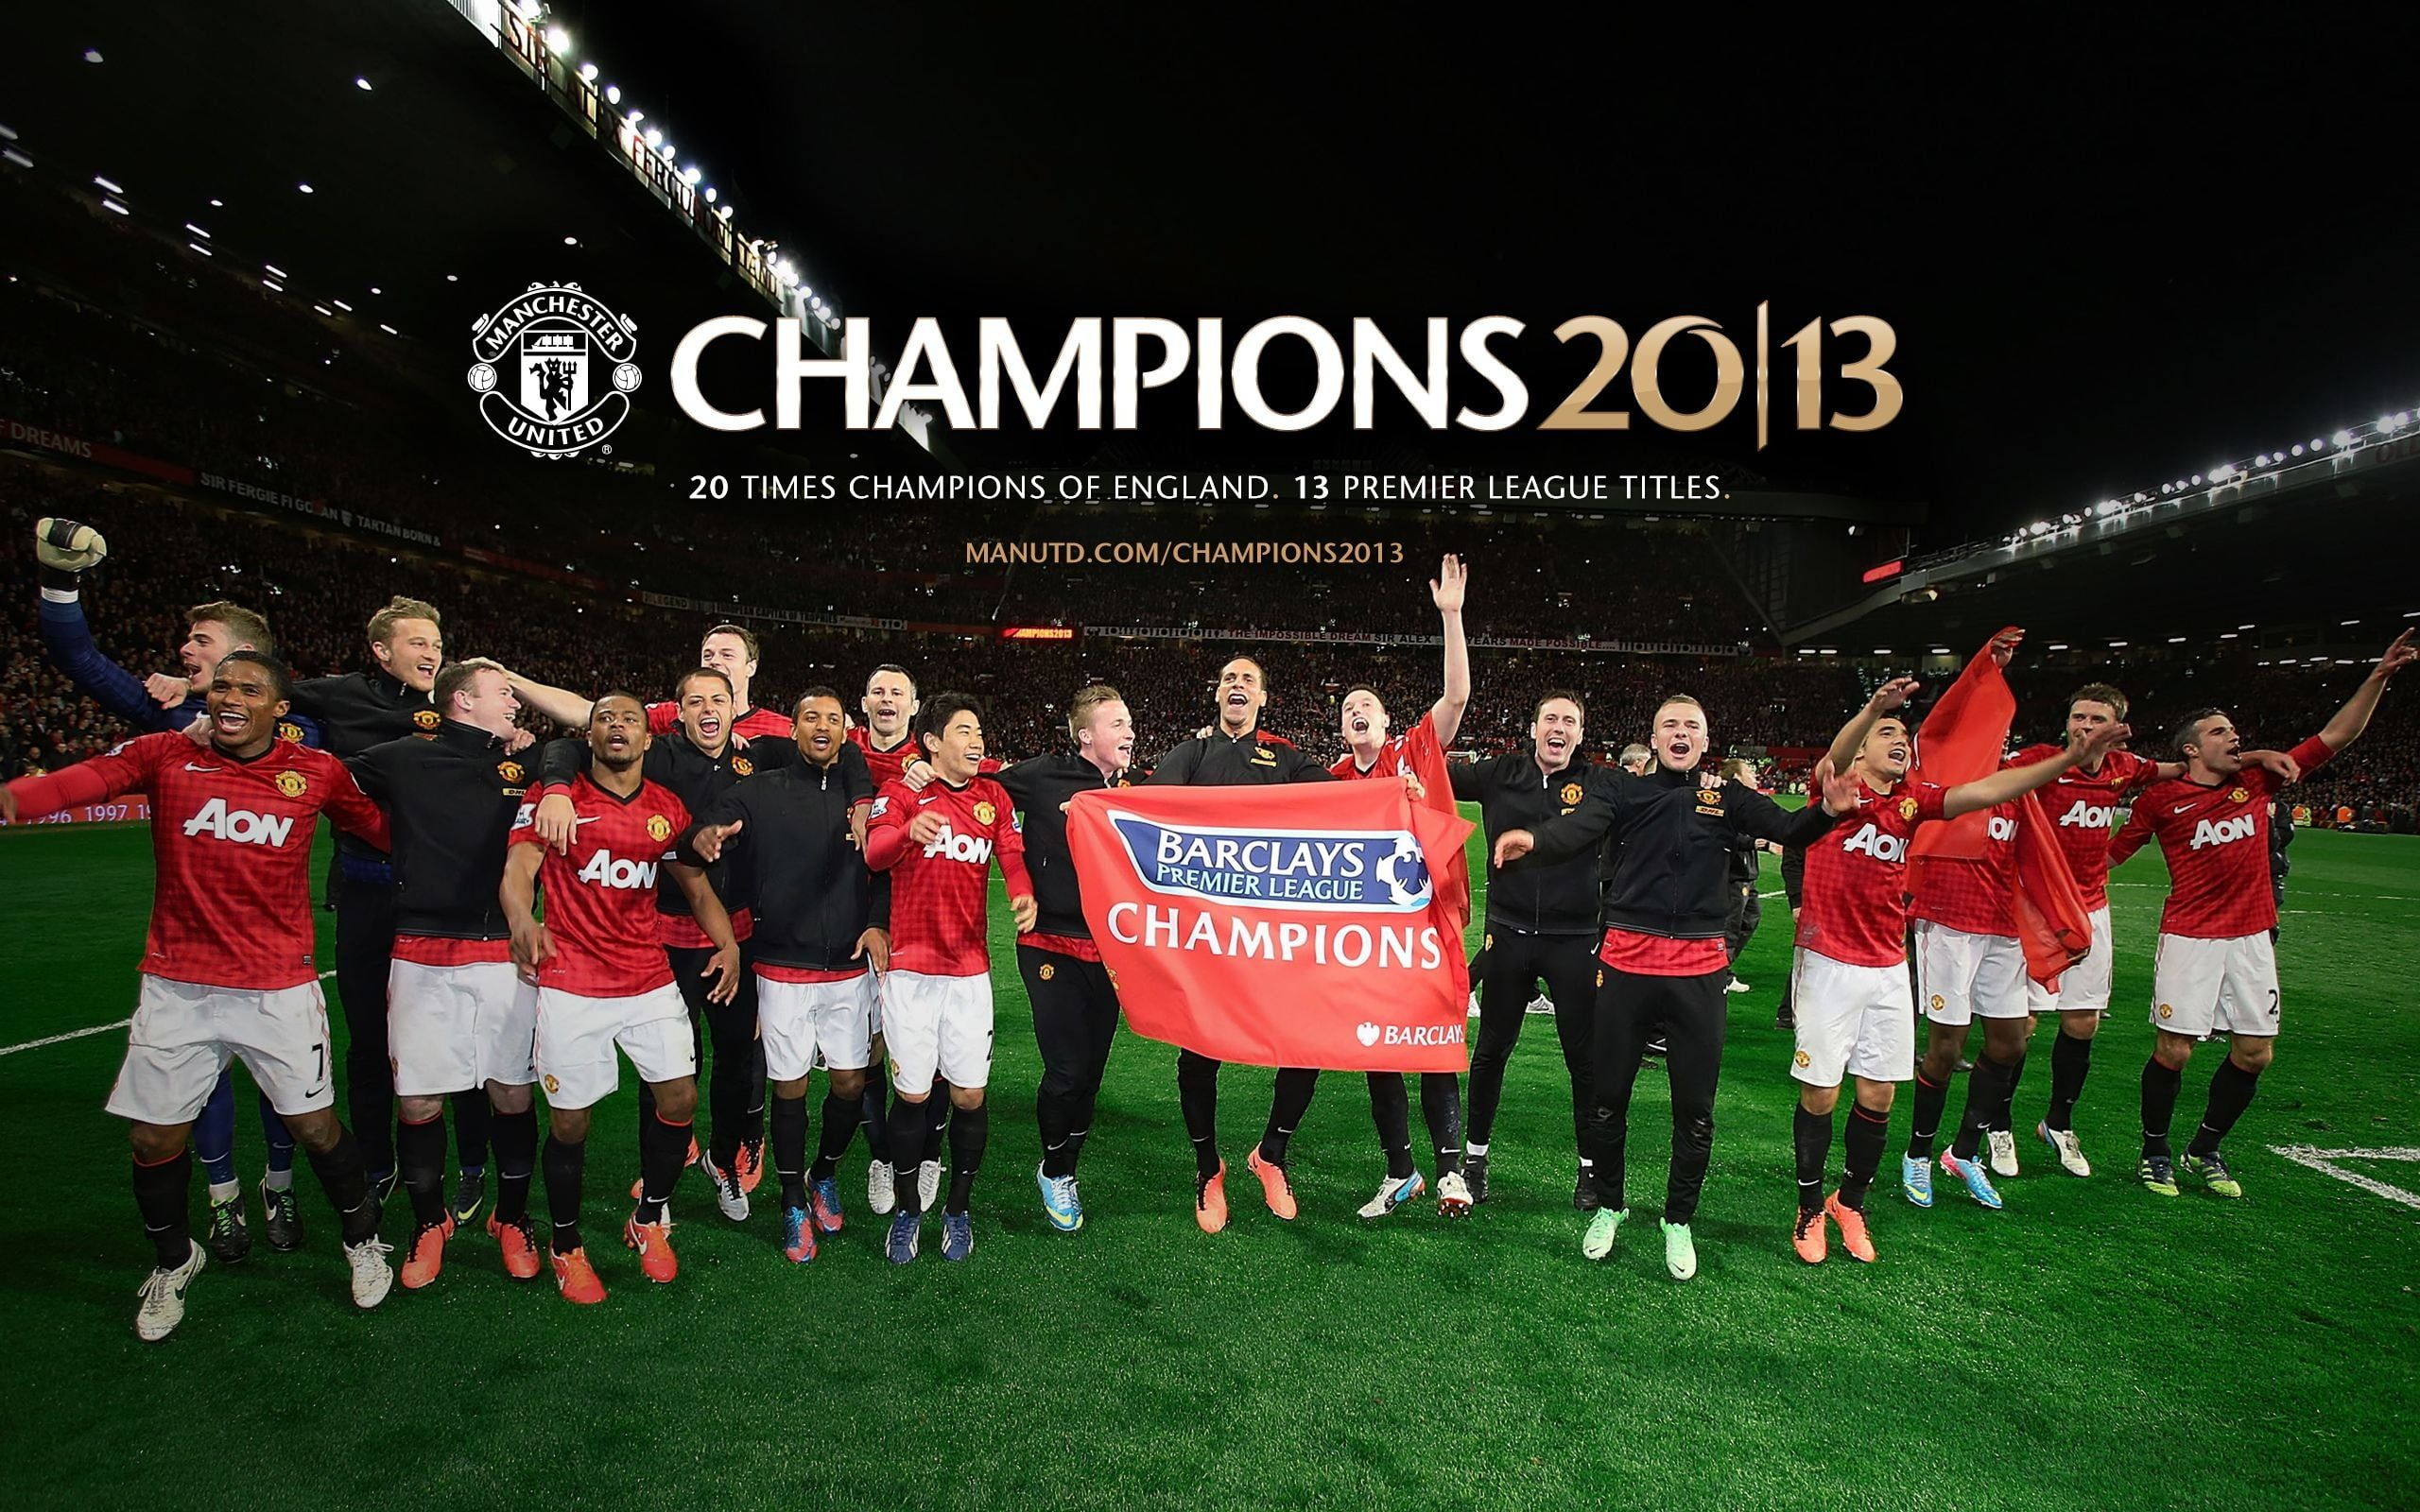 Manchester United 2012 13 Champion Wallpaper 01 Men S Black Jersey Shirt 2k Wallpaper In 2020 Manchester United Team Manchester United Champions Manchester United